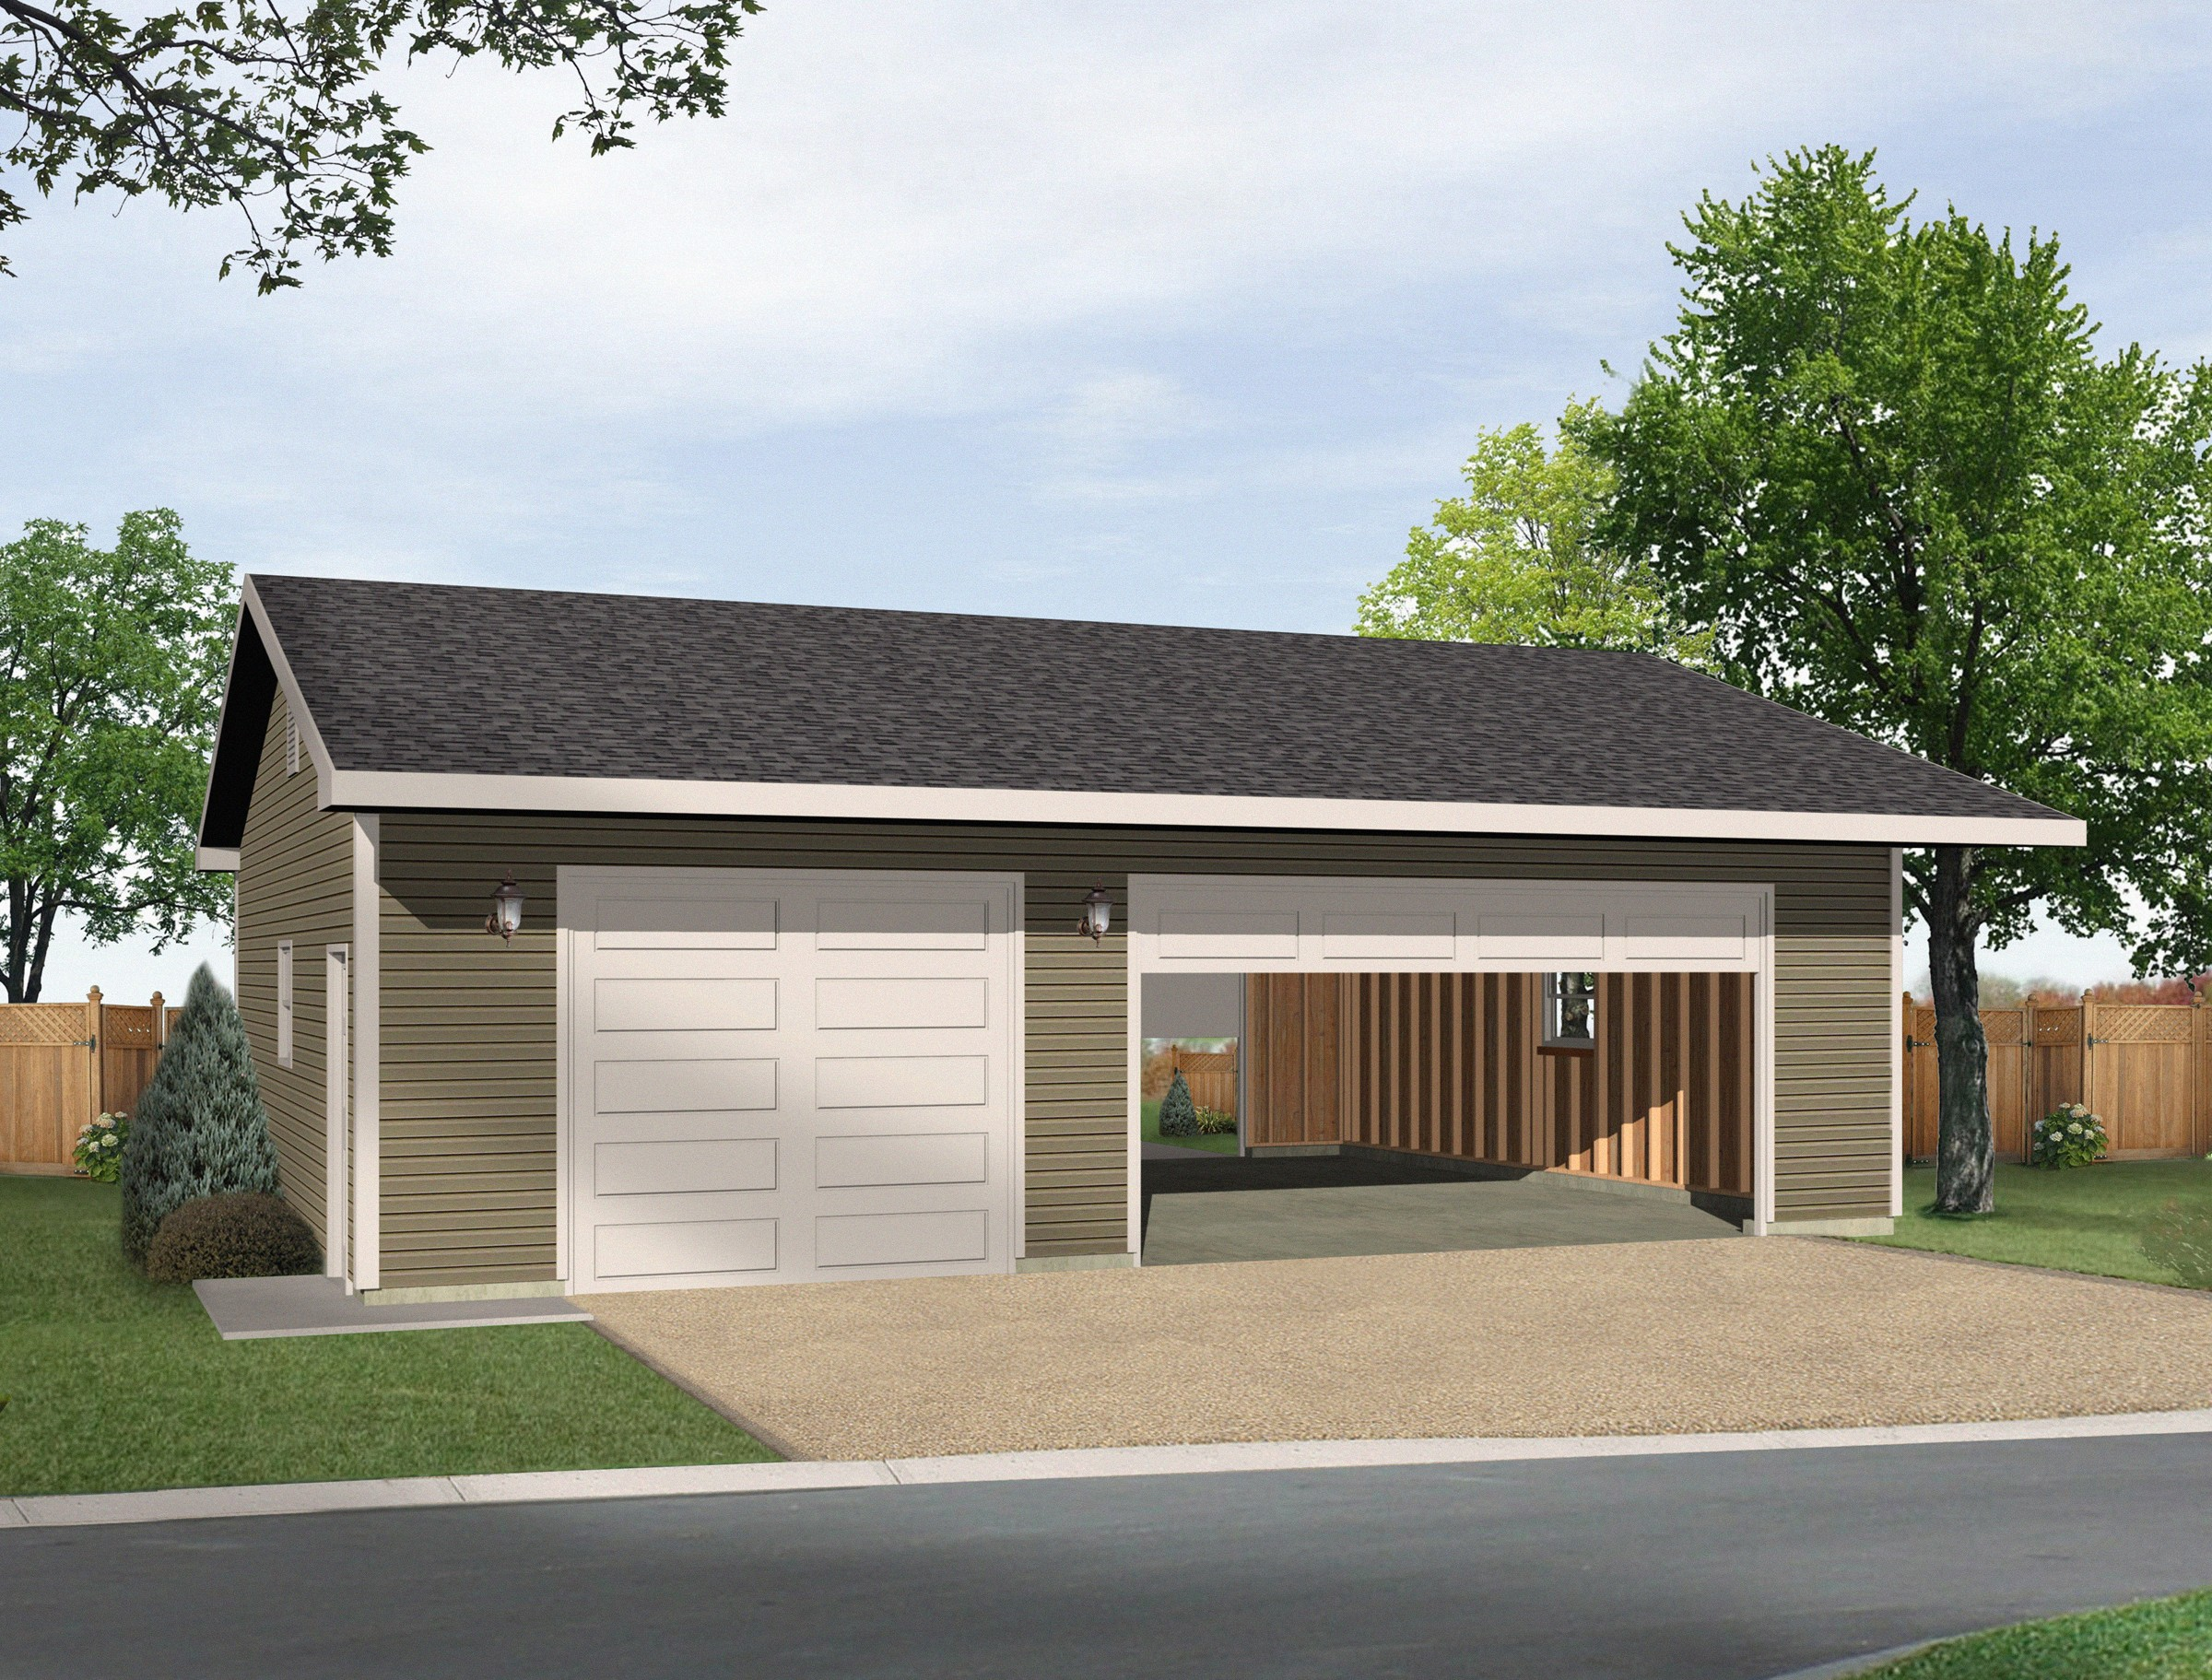 Detached 3 car drive thru garage 22046sl cad available for 3 car detached garage